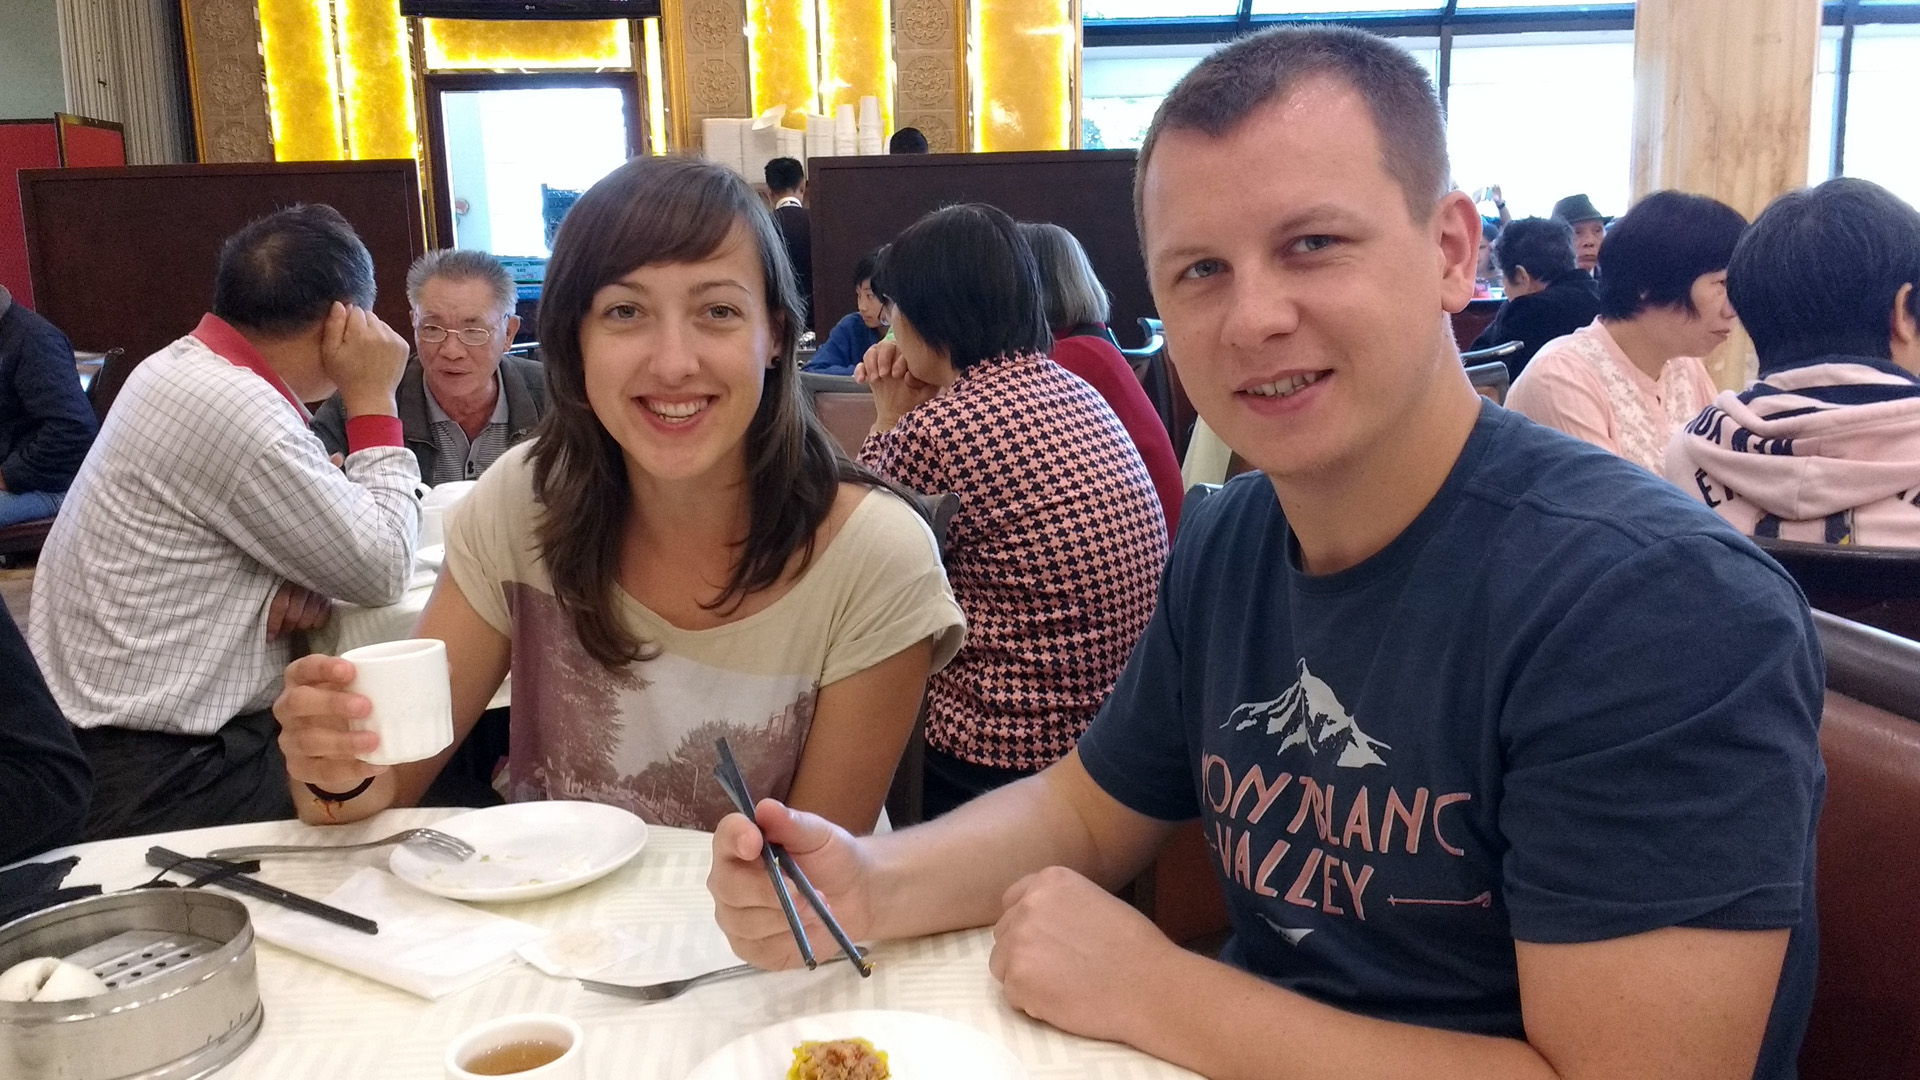 Ida & Czarek at a table eating dim sum at a restaurant in Rosemead, CA